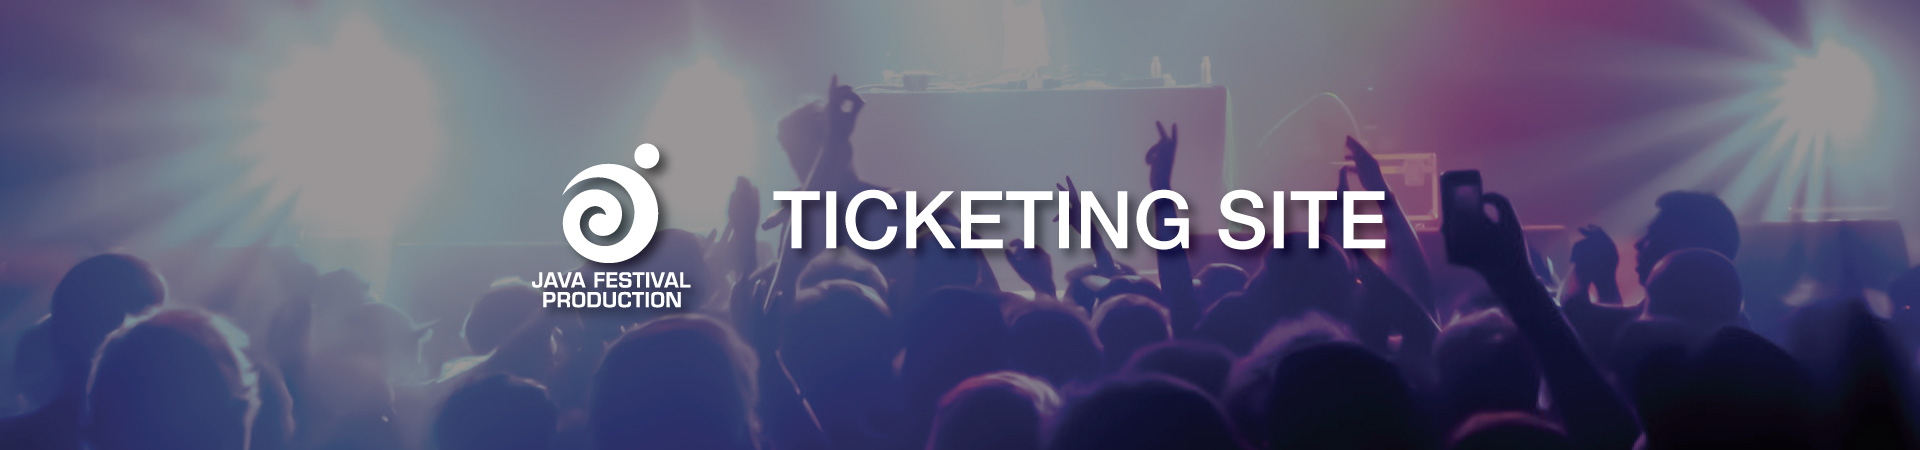 Java Festival Production (JFP) Ticketing System